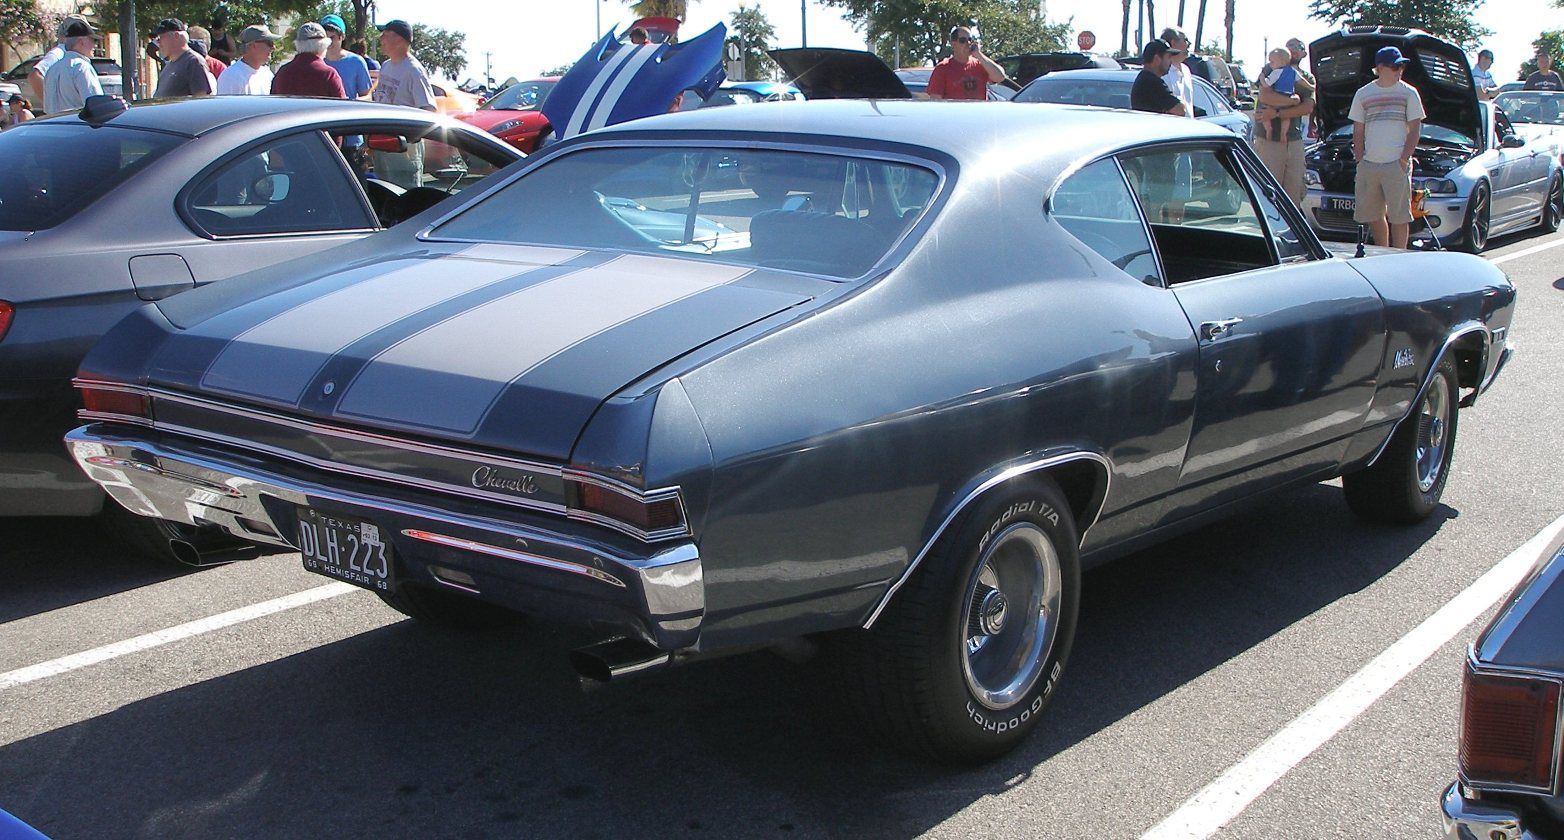 68 chevelle grey with silver stripes